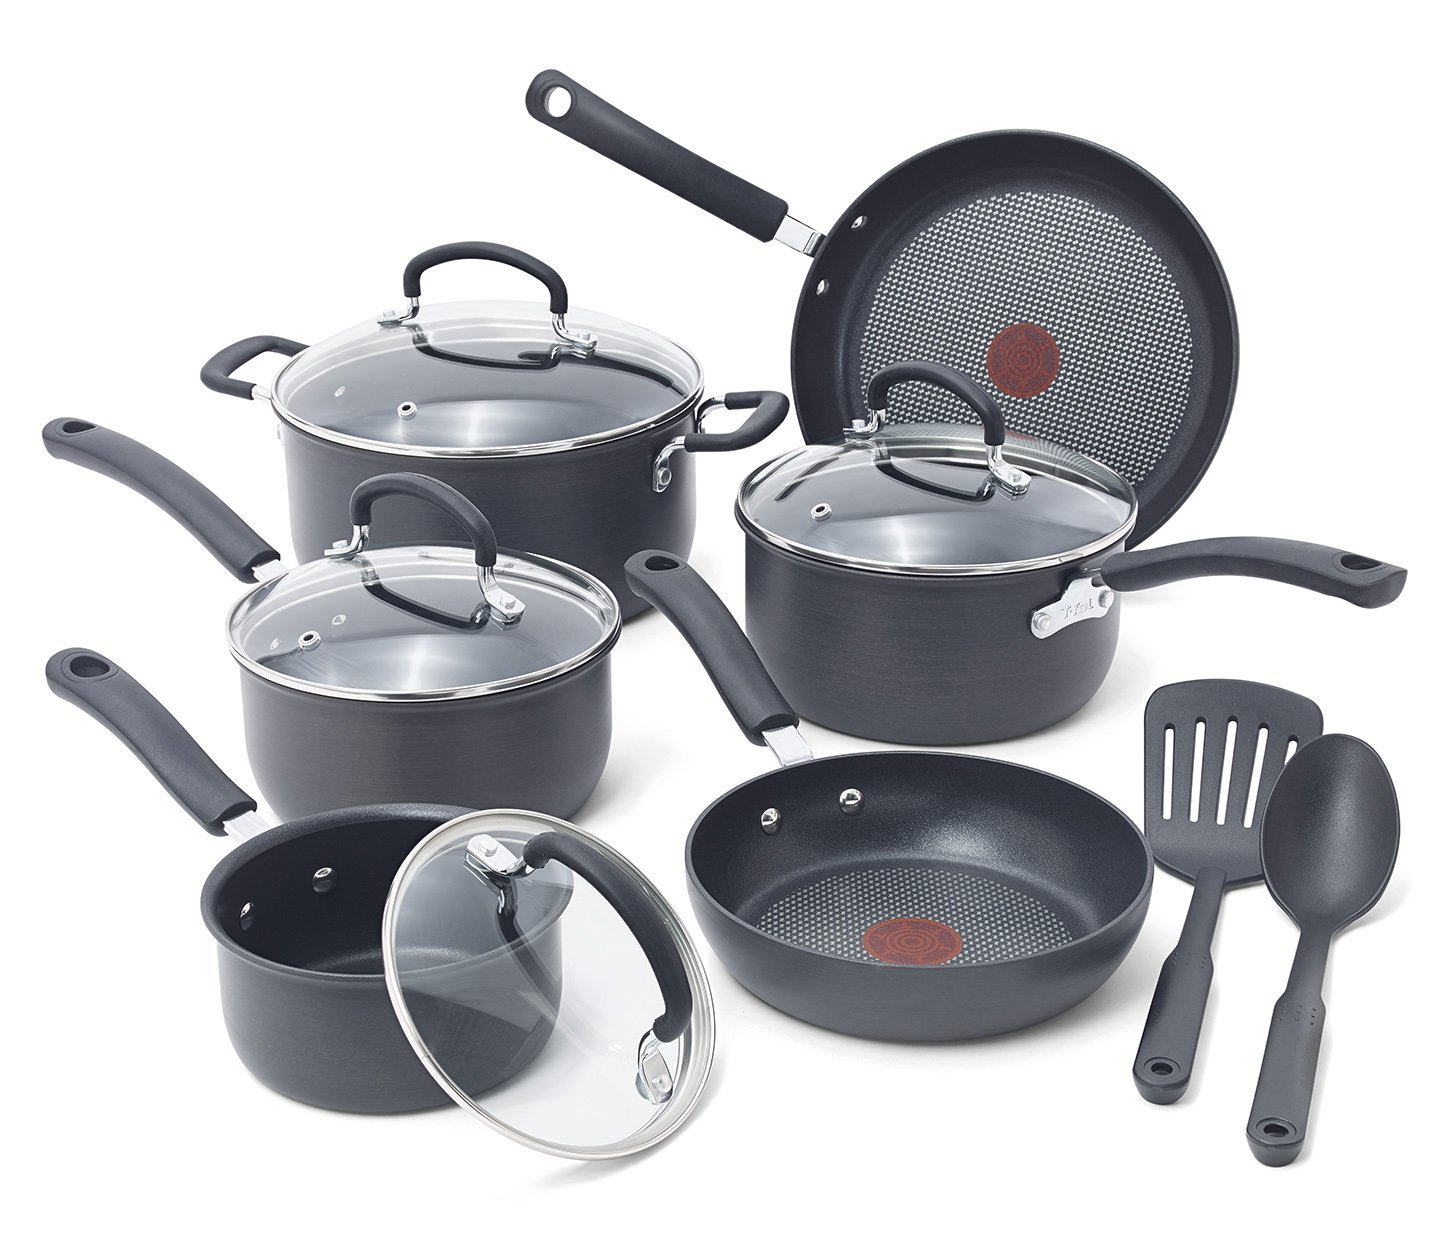 T-fal Ultimate Nonstick Cookware Set Review